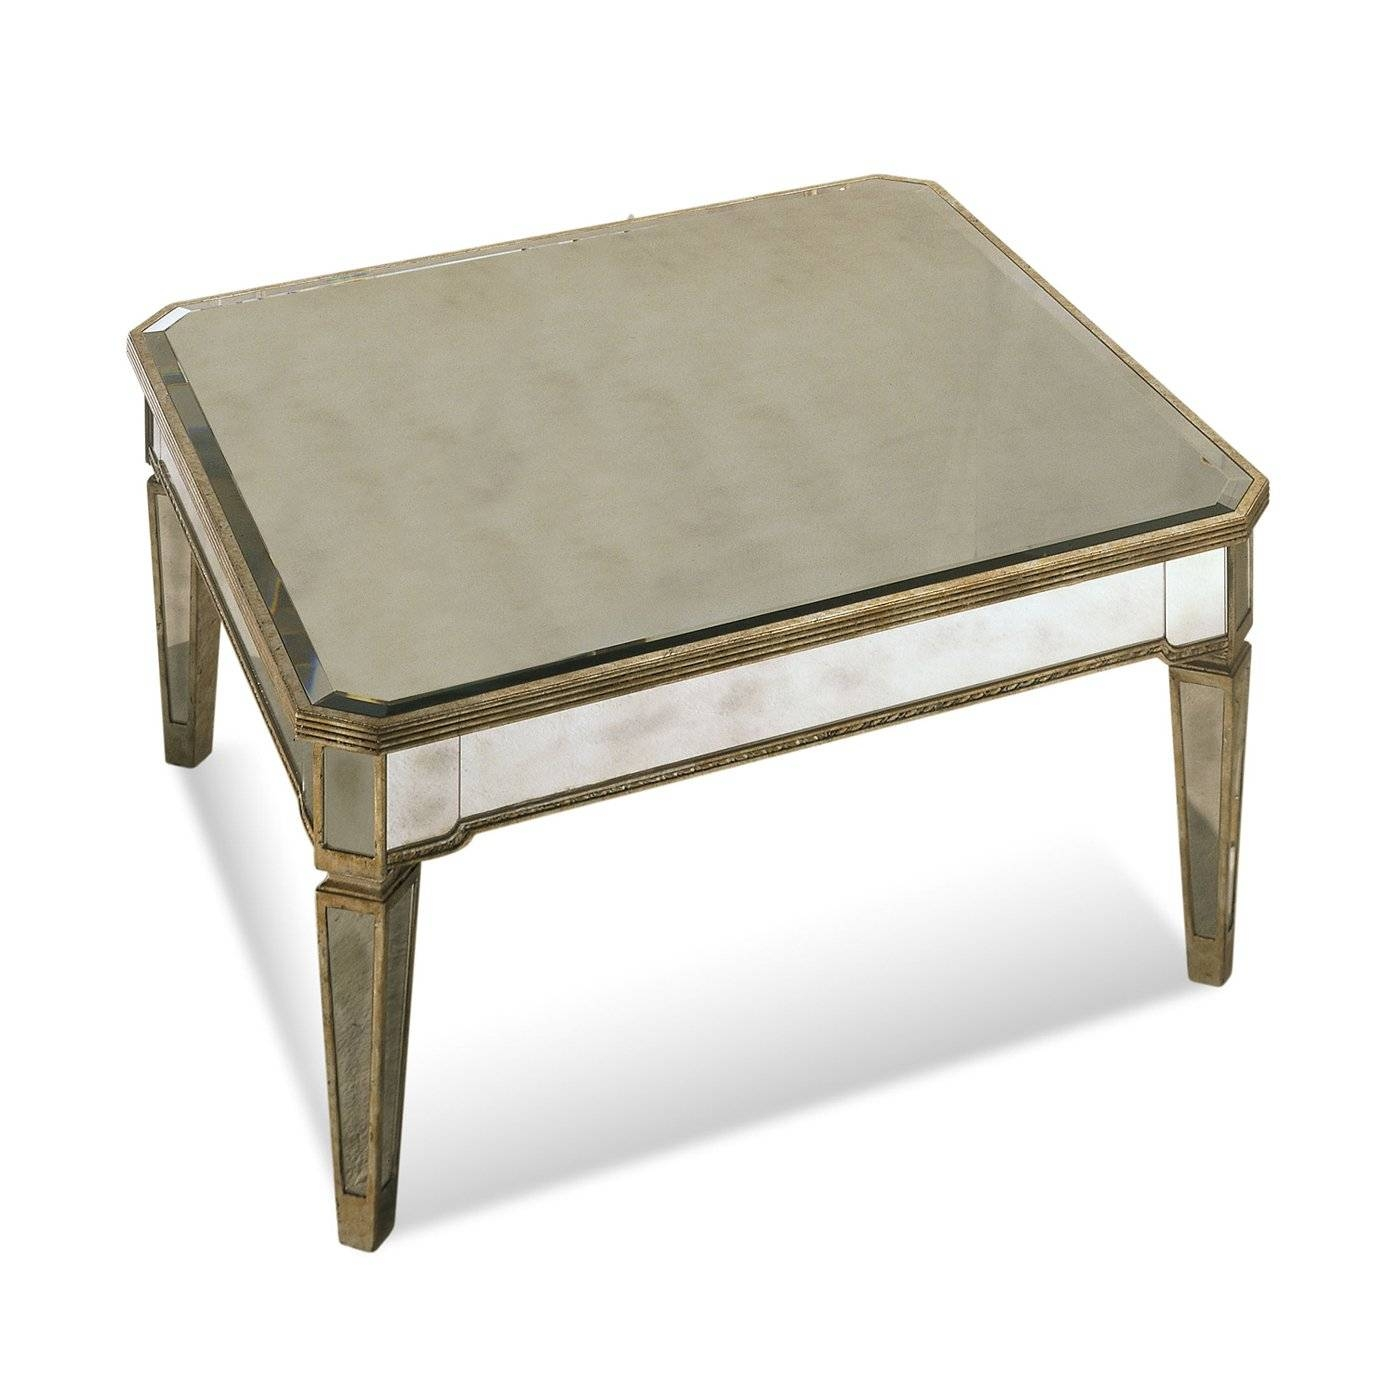 Furniture: Lovely Antique Square Mirrored Coffee Table With Iron inside Round Mirrored Coffee Tables (Image 10 of 30)